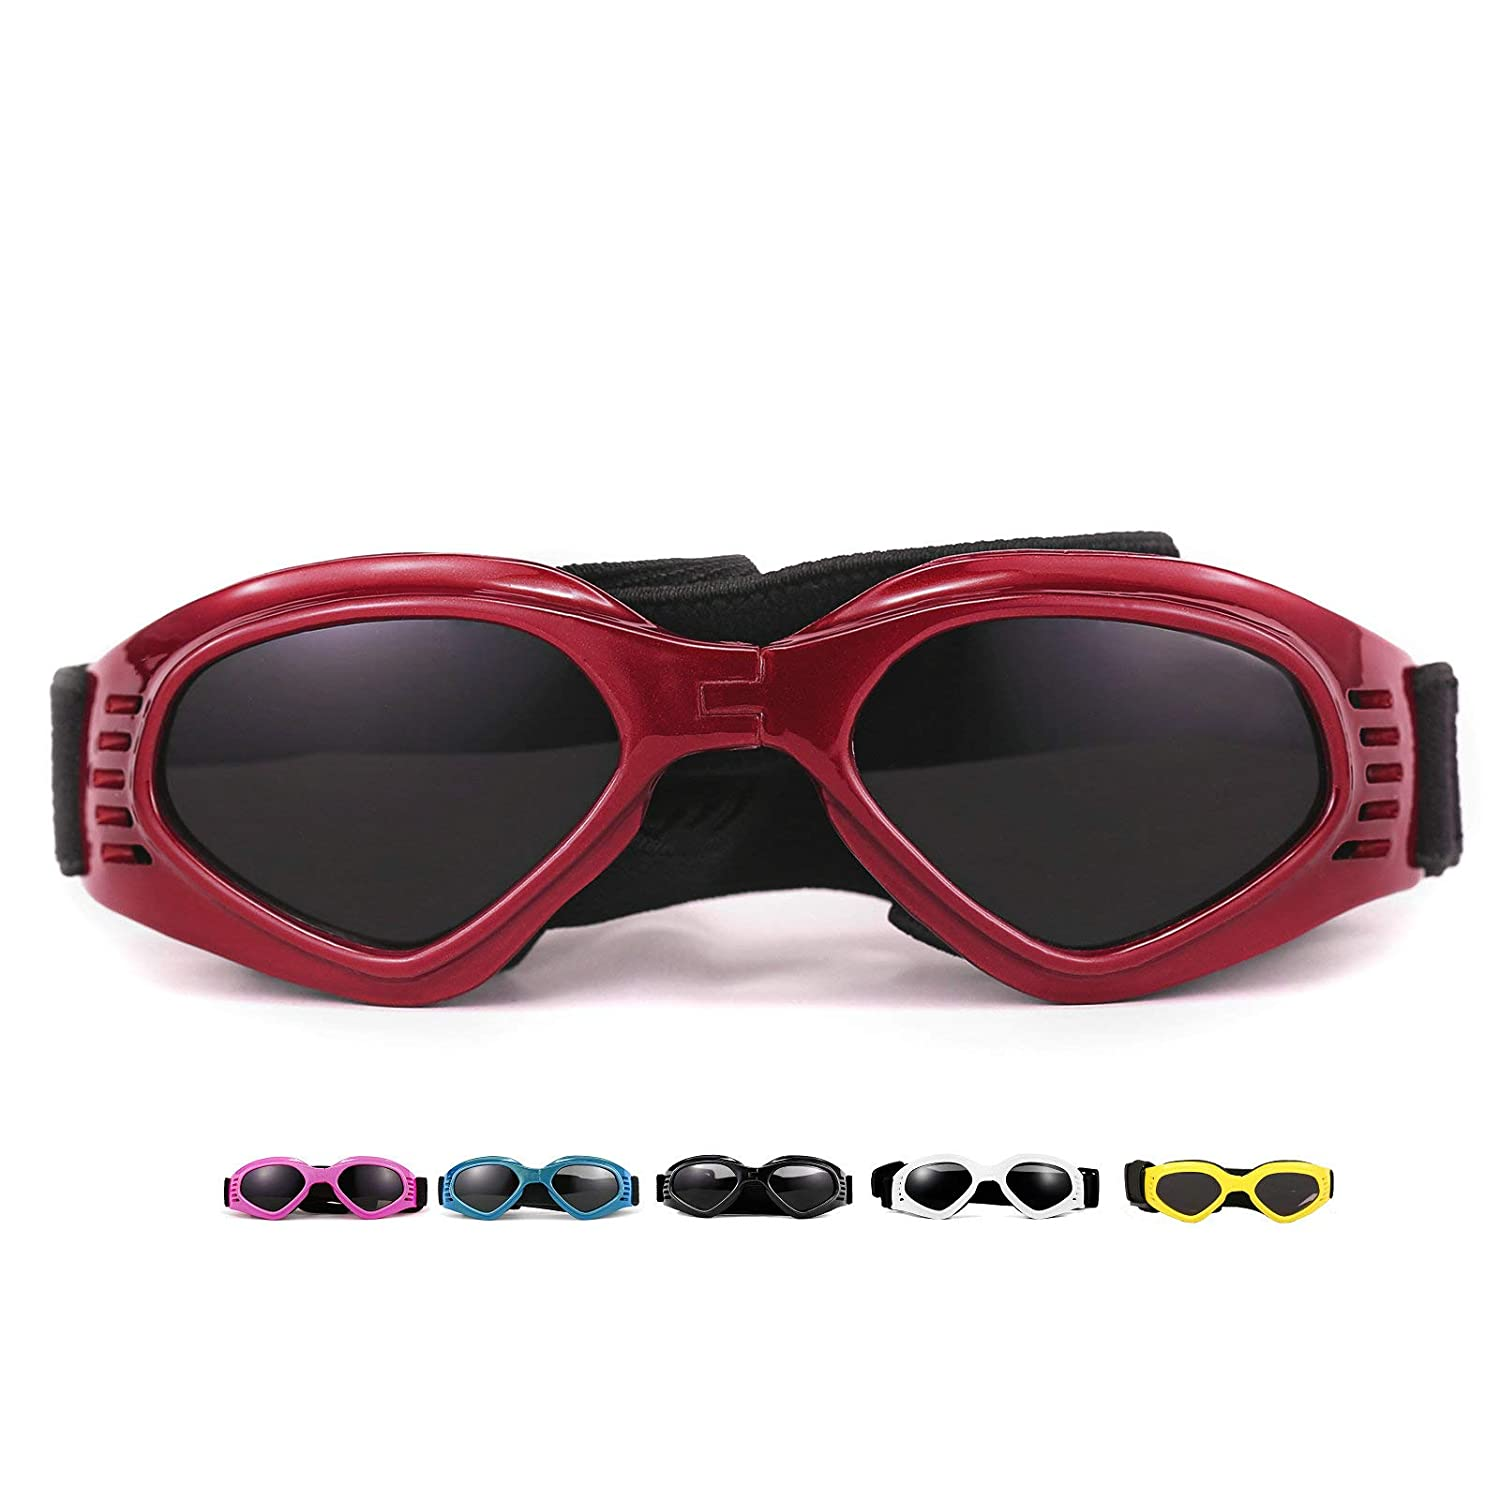 Red Vevins Dog Goggles Sunglasses UV Predective Foldable Pet Sunglasses Adjustable Waterproof Eyewear for Cat Dog (Red)